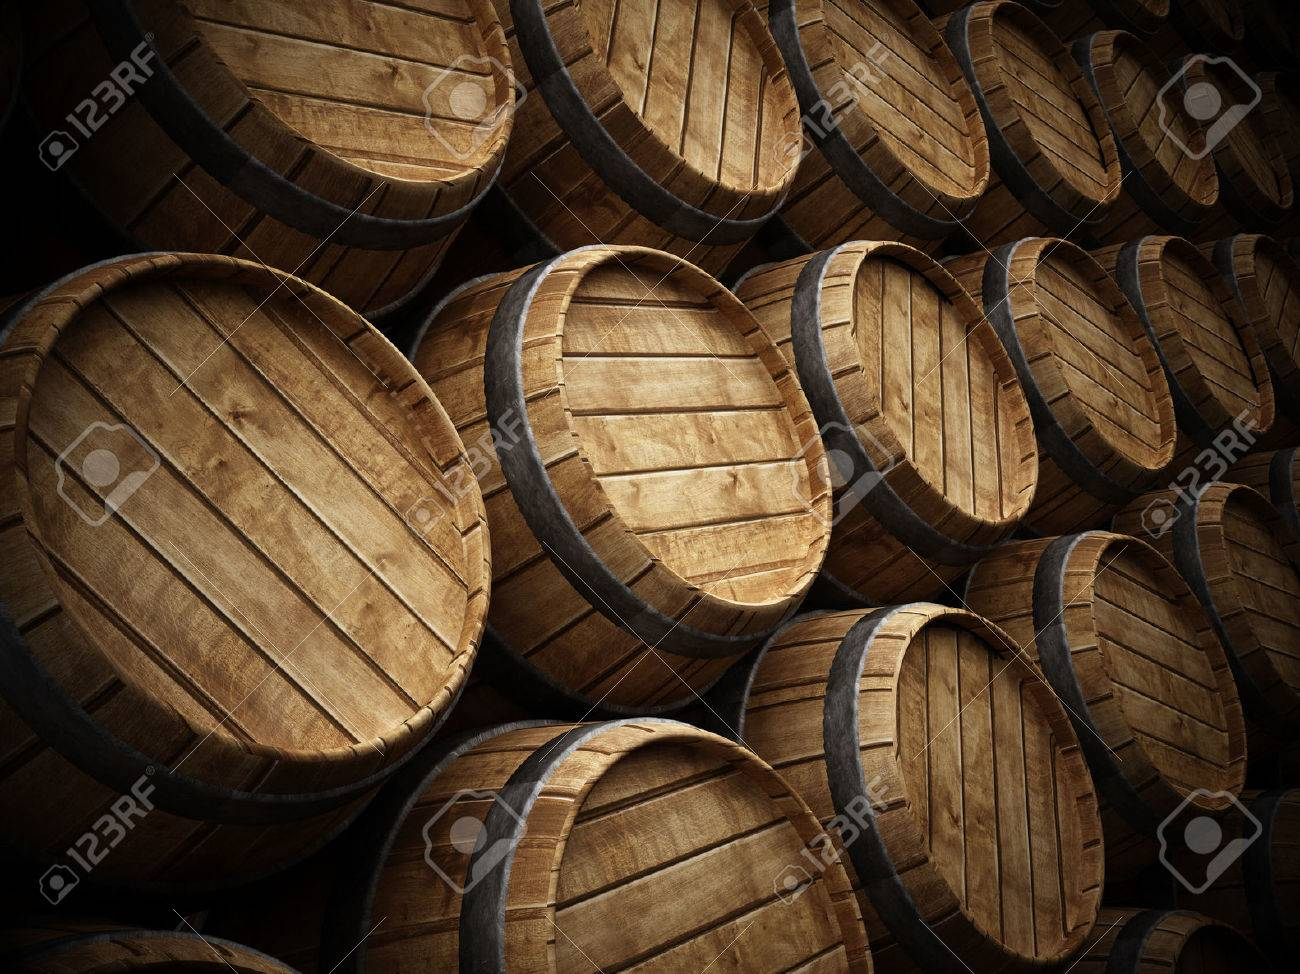 Wine cellar with stack of wooden barrels Stock Photo - 42177701